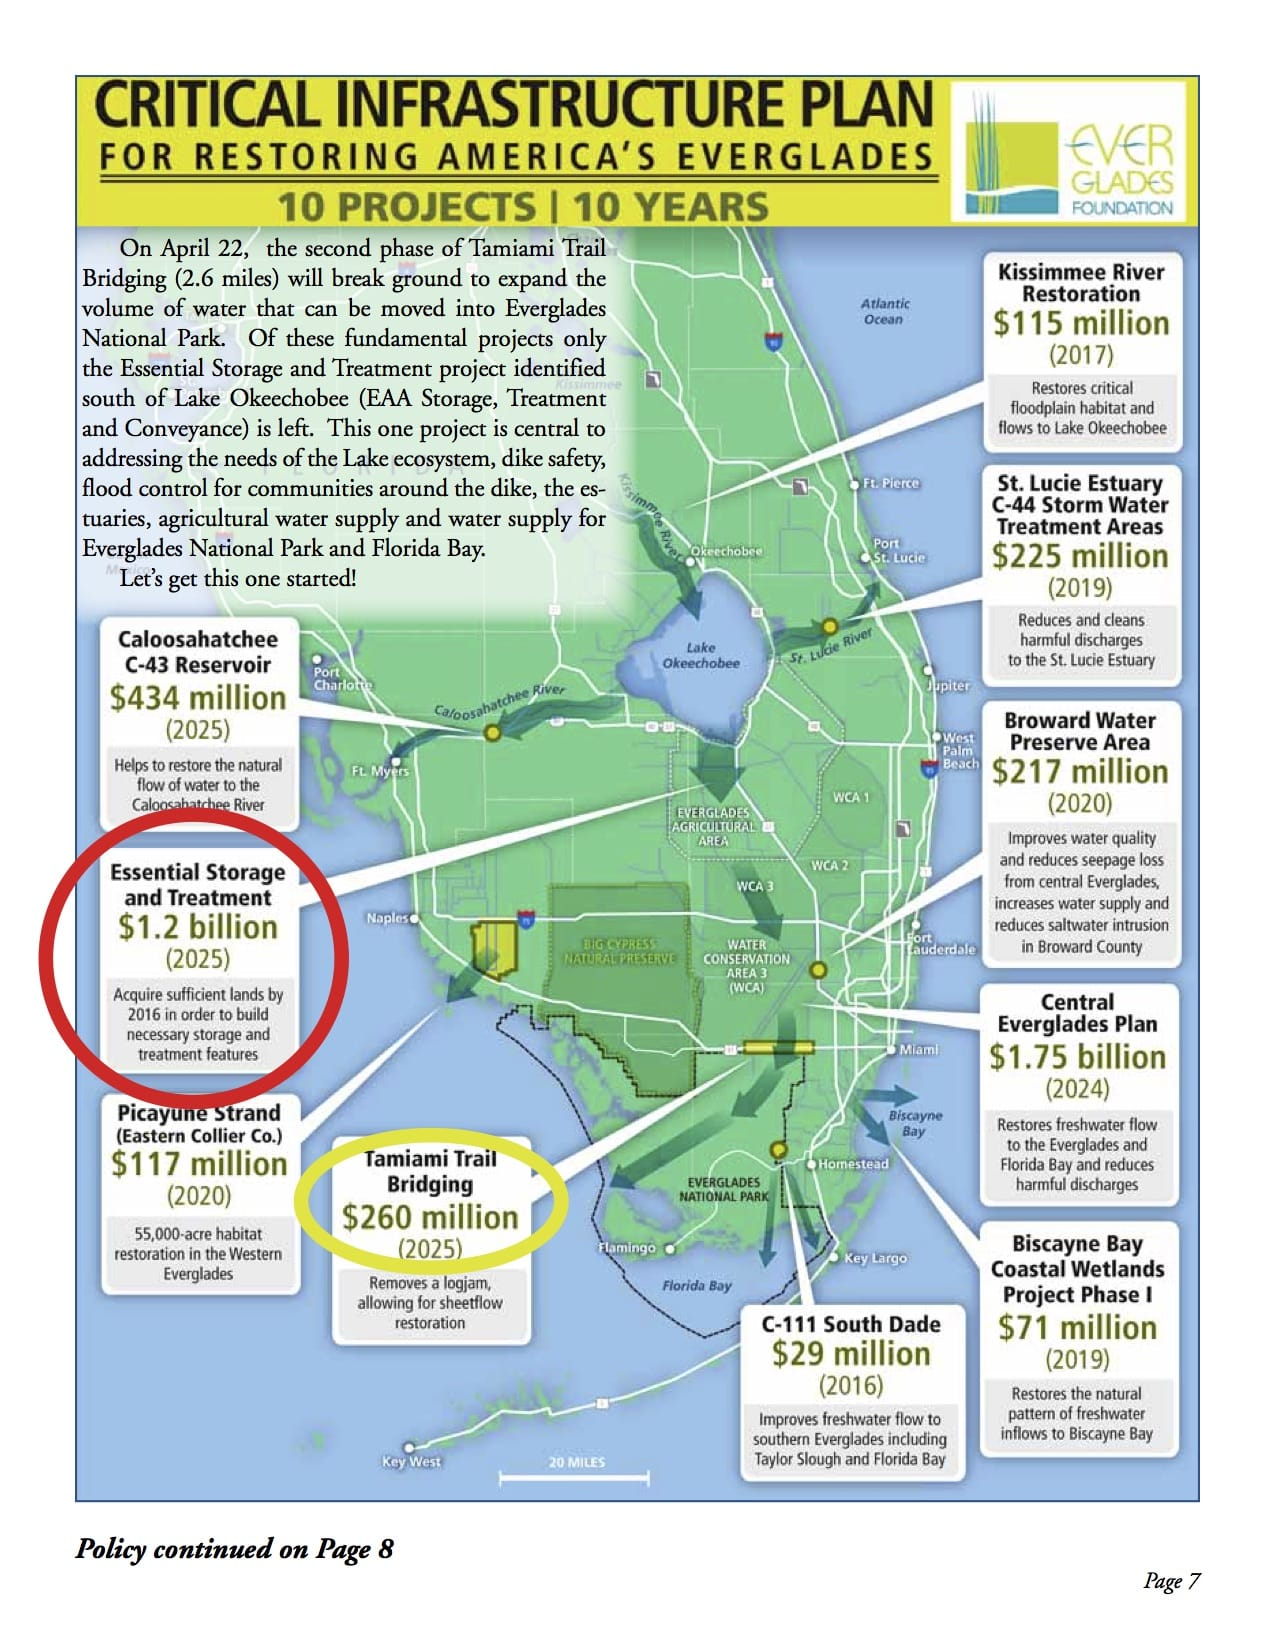 Critical Infrastructure Plan For Restoring America' s Everglades. 10 Projects - 10 Years.